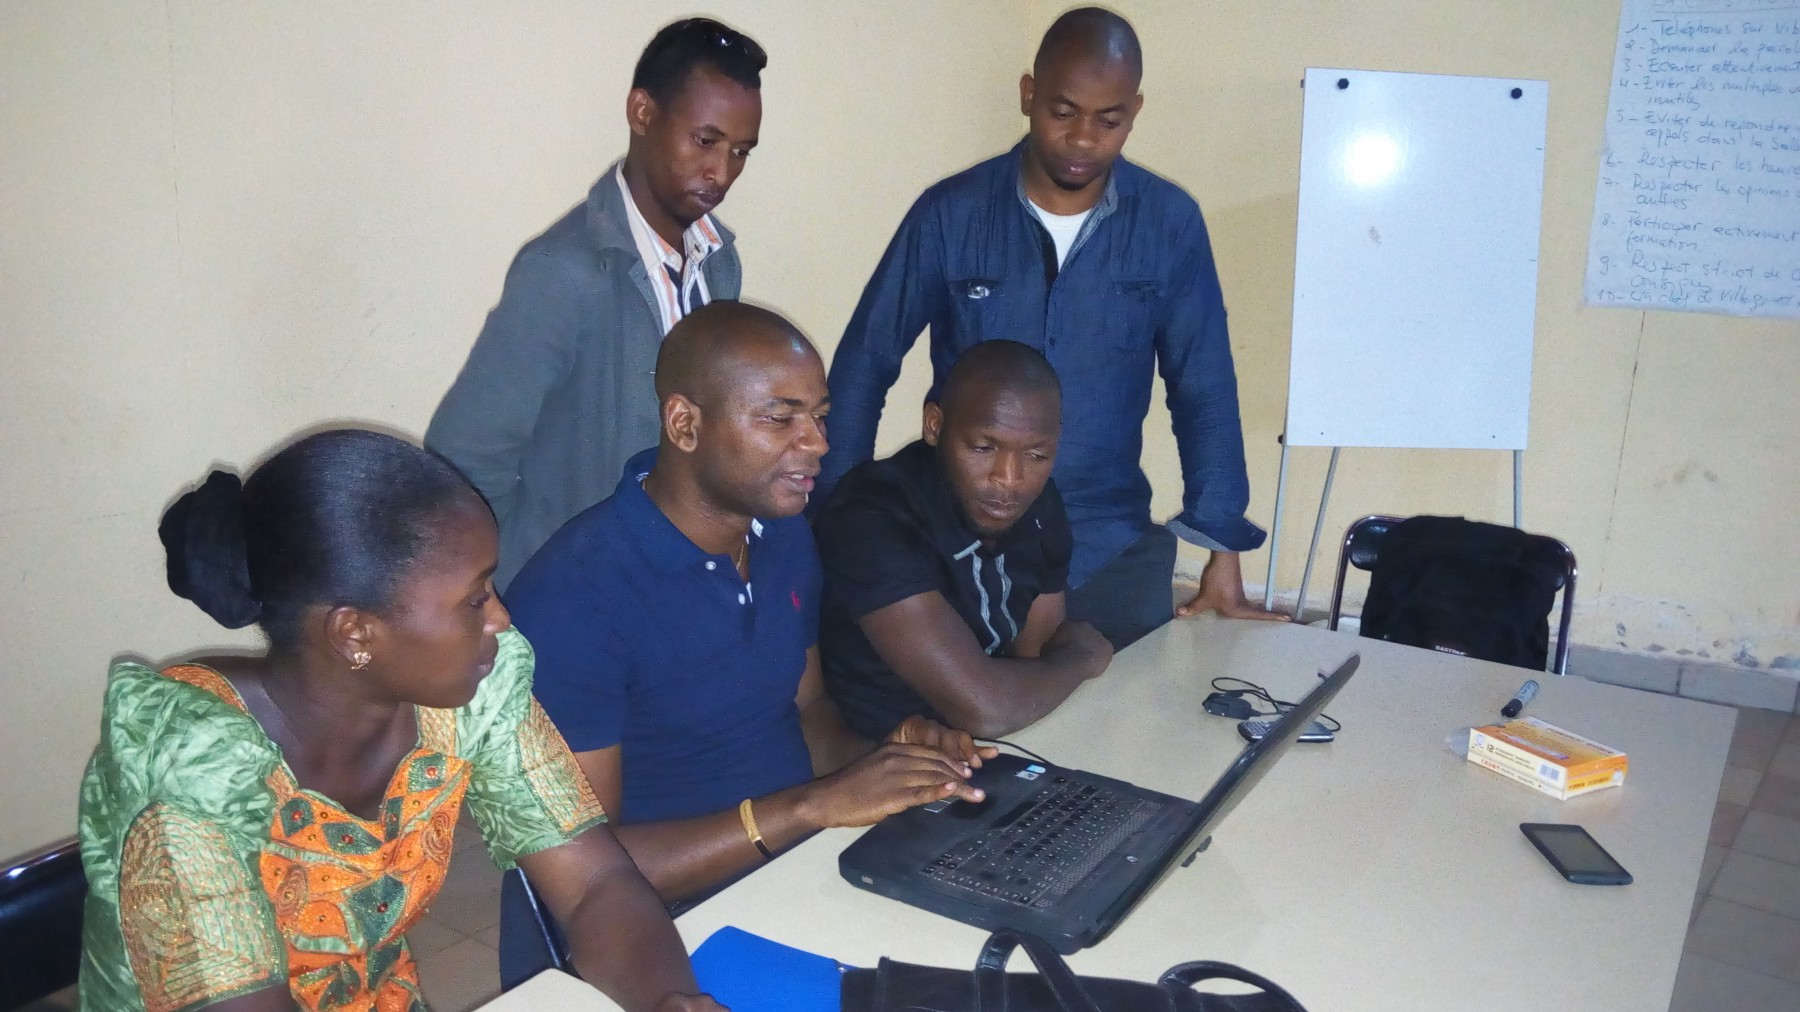 A trainer works with 4 journalists on a laptop computer